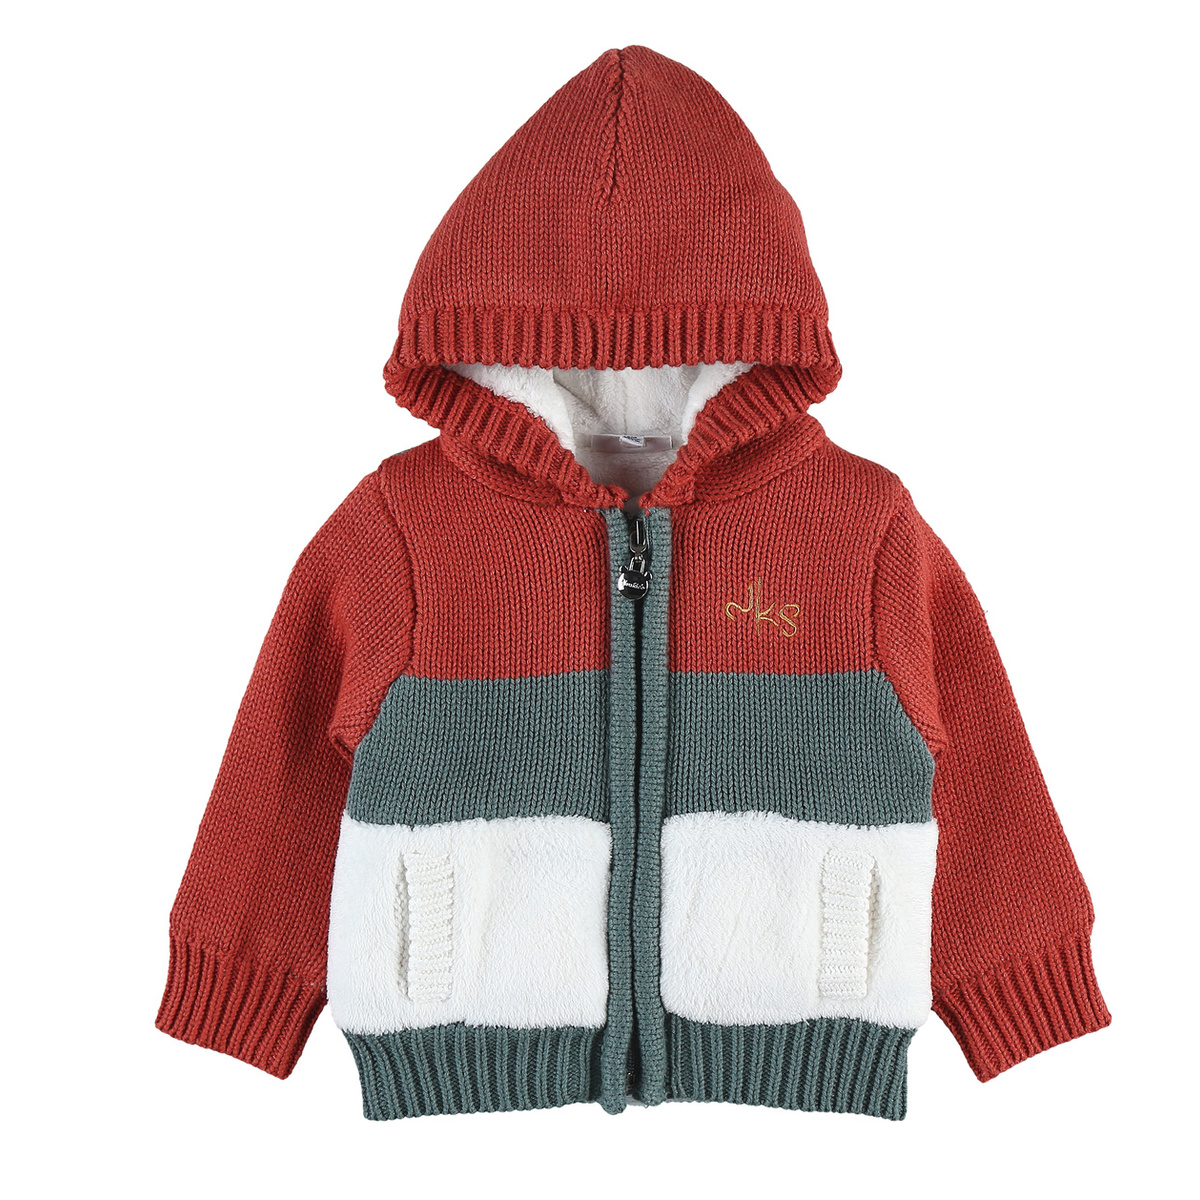 Multicolour Tricoloudoux zipped hoodie jacket